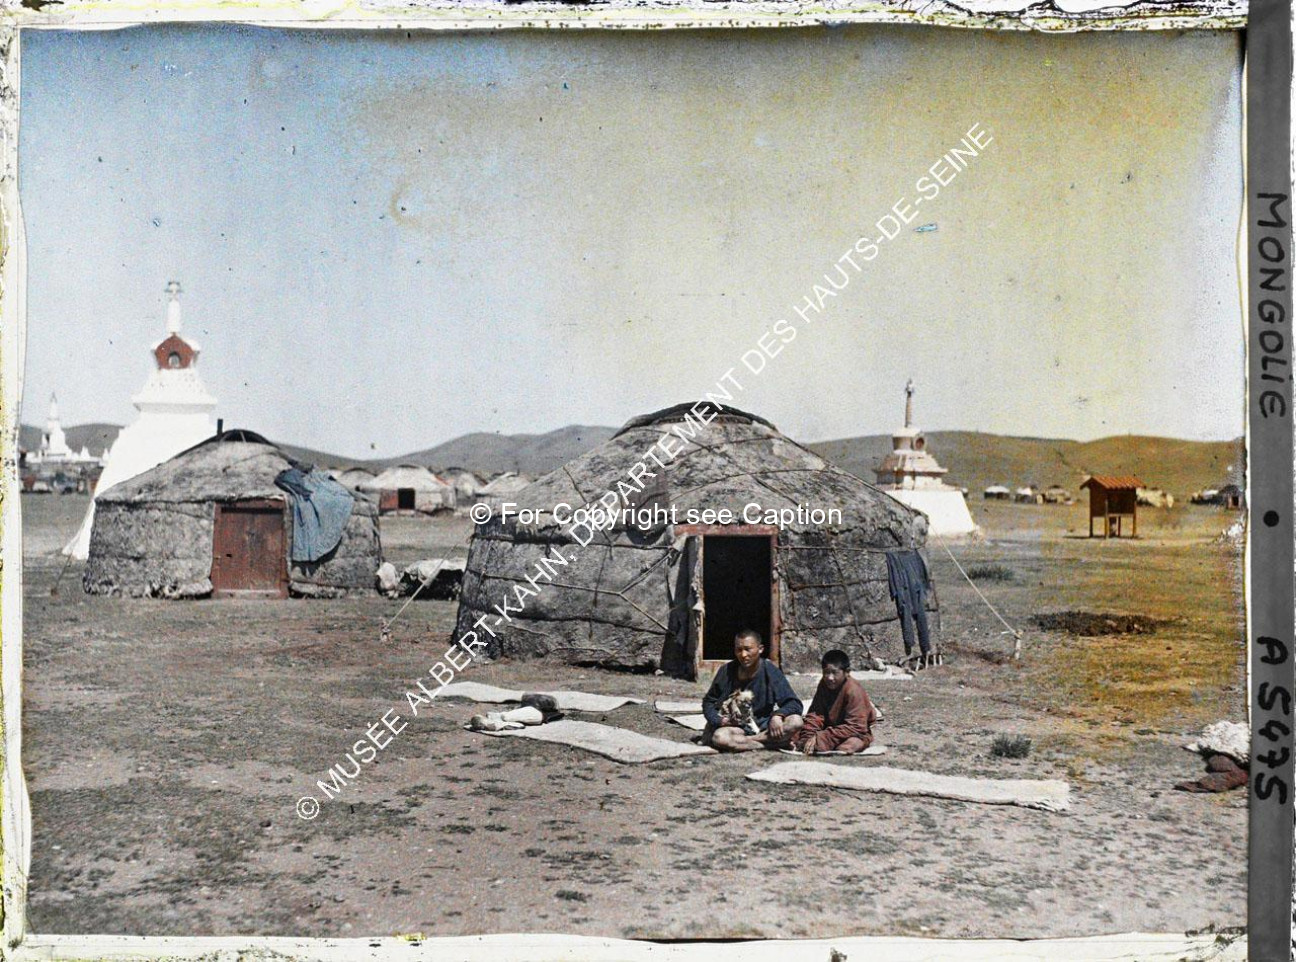 Children in front of yurts and stupas, South-East of Jarankhashar stupa. Musée Albert-Kahn. A5475. P